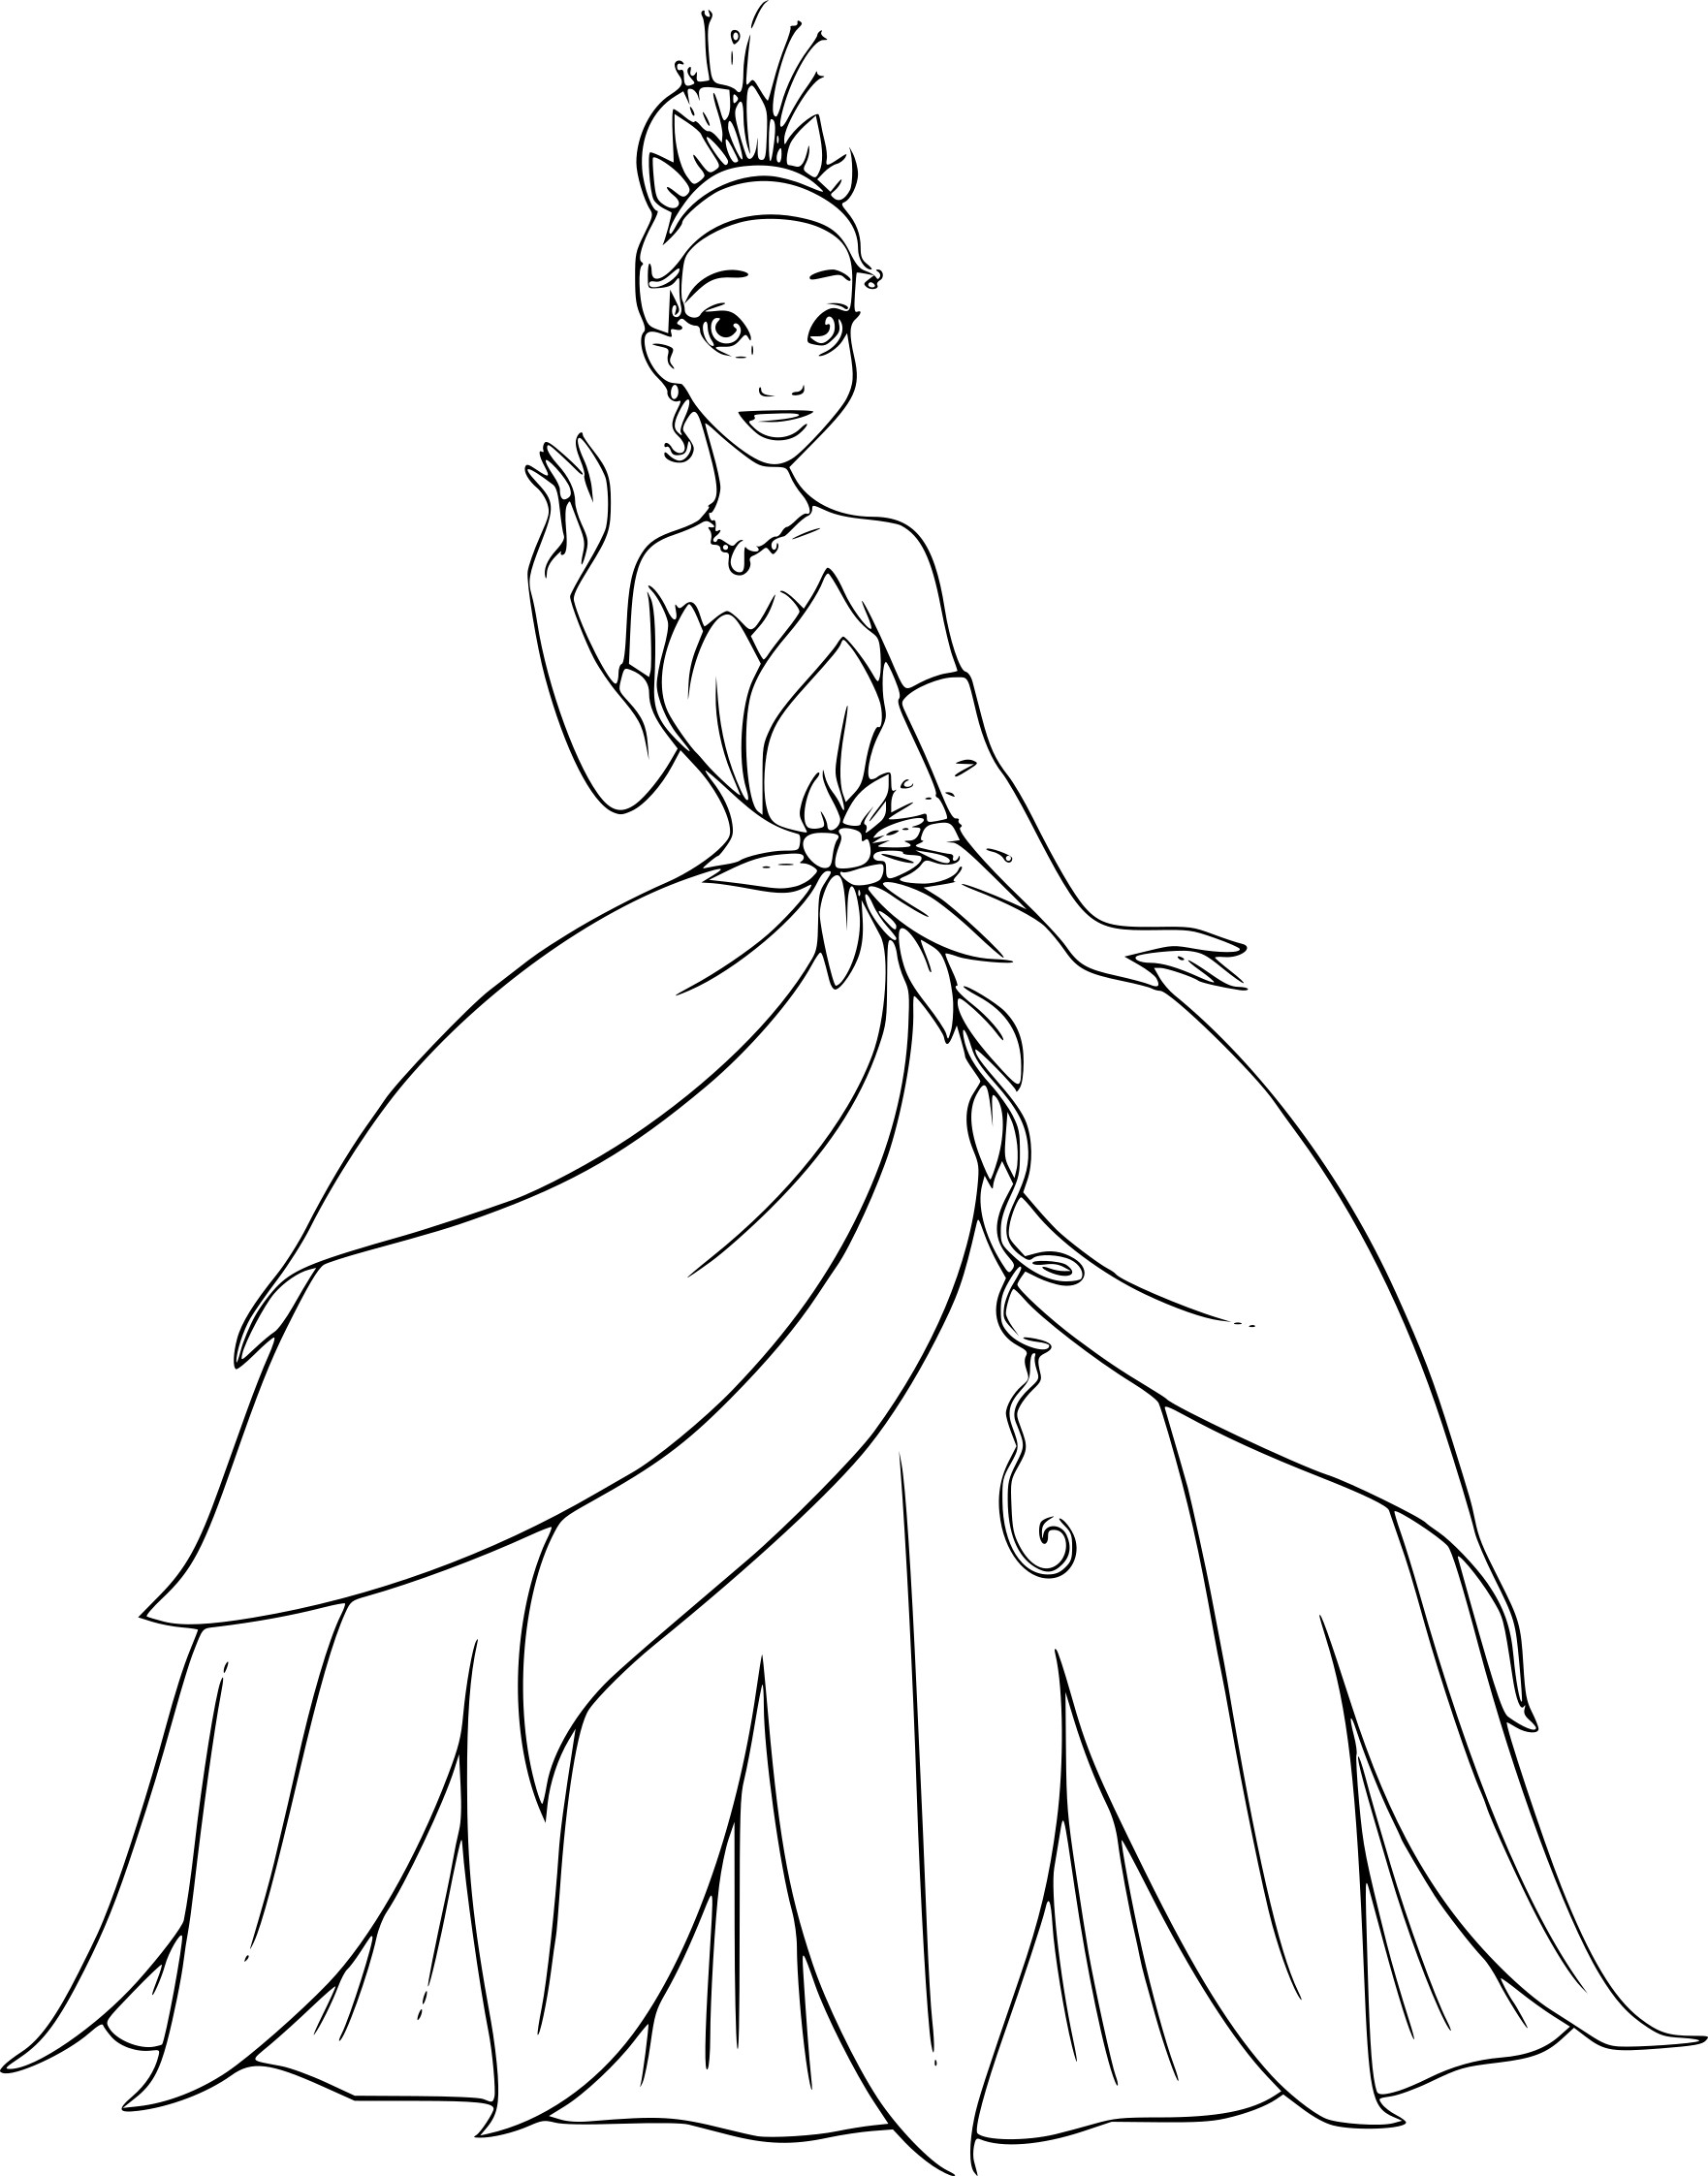 Coloriage princesse elena avalor - Colriage princesse ...